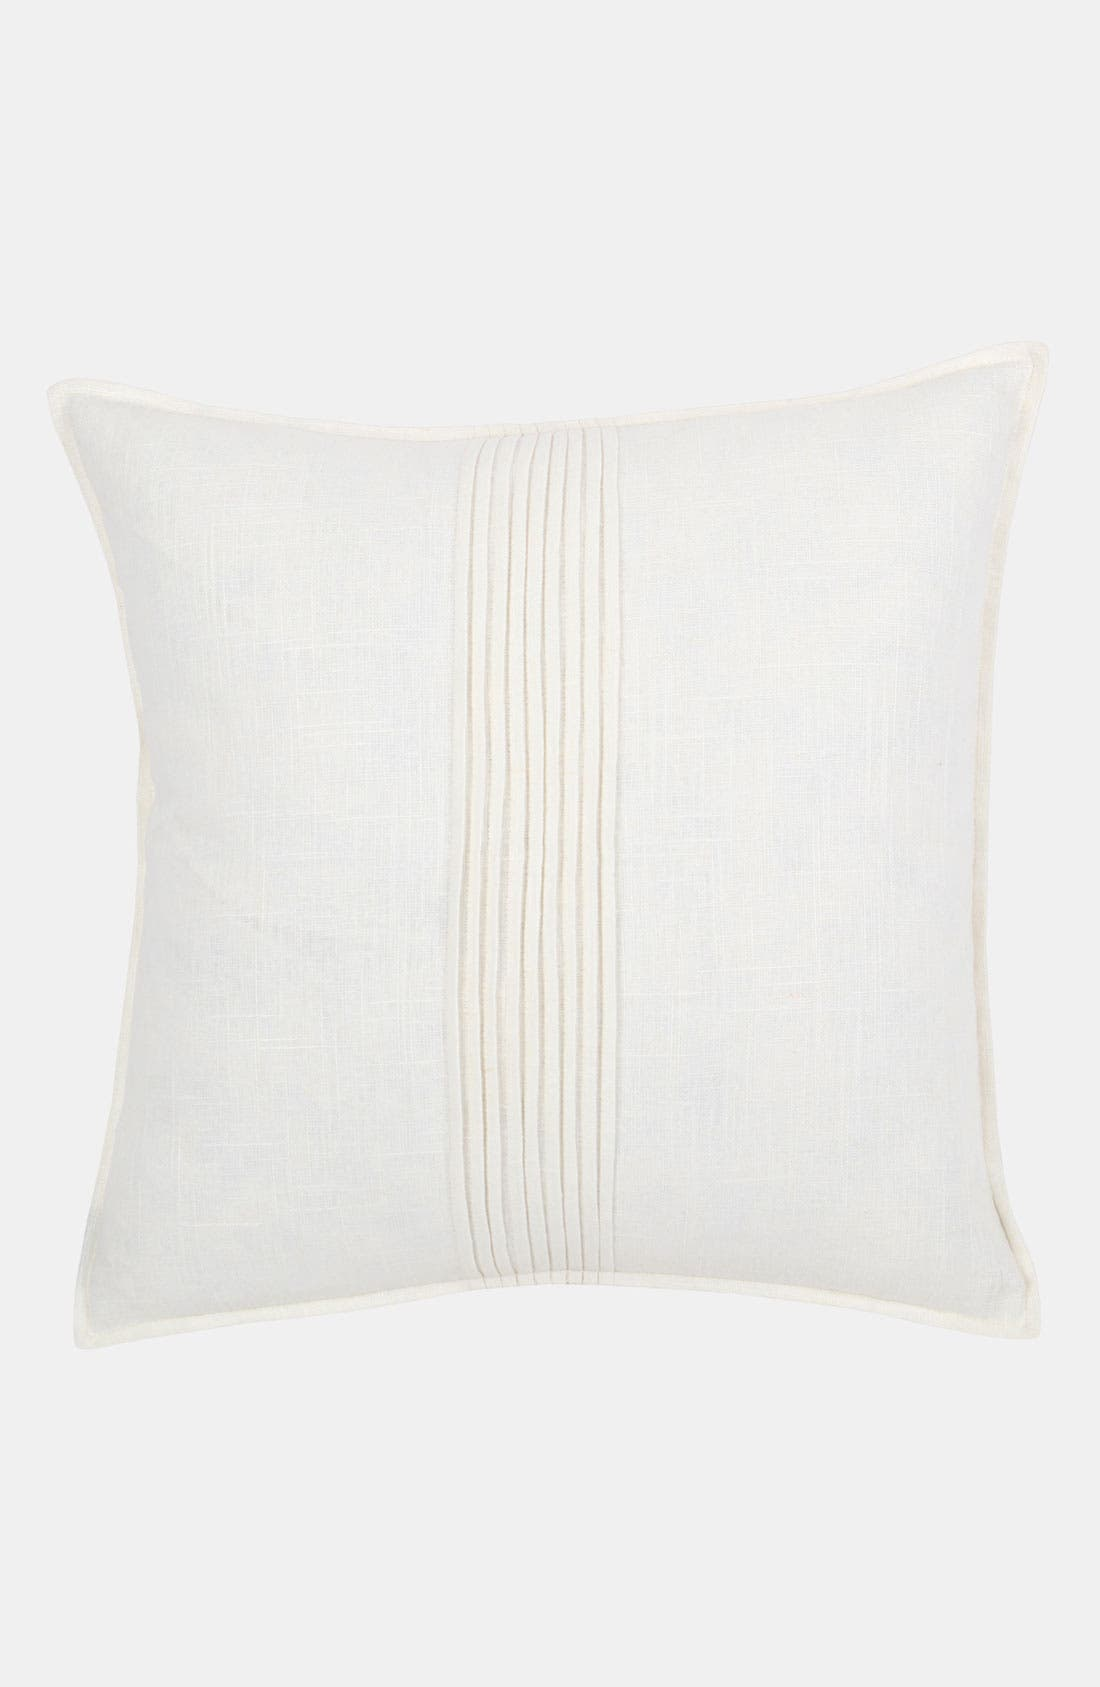 Alternate Image 1 Selected - Blissliving Home 'Pierce' Pillow (Online Only)